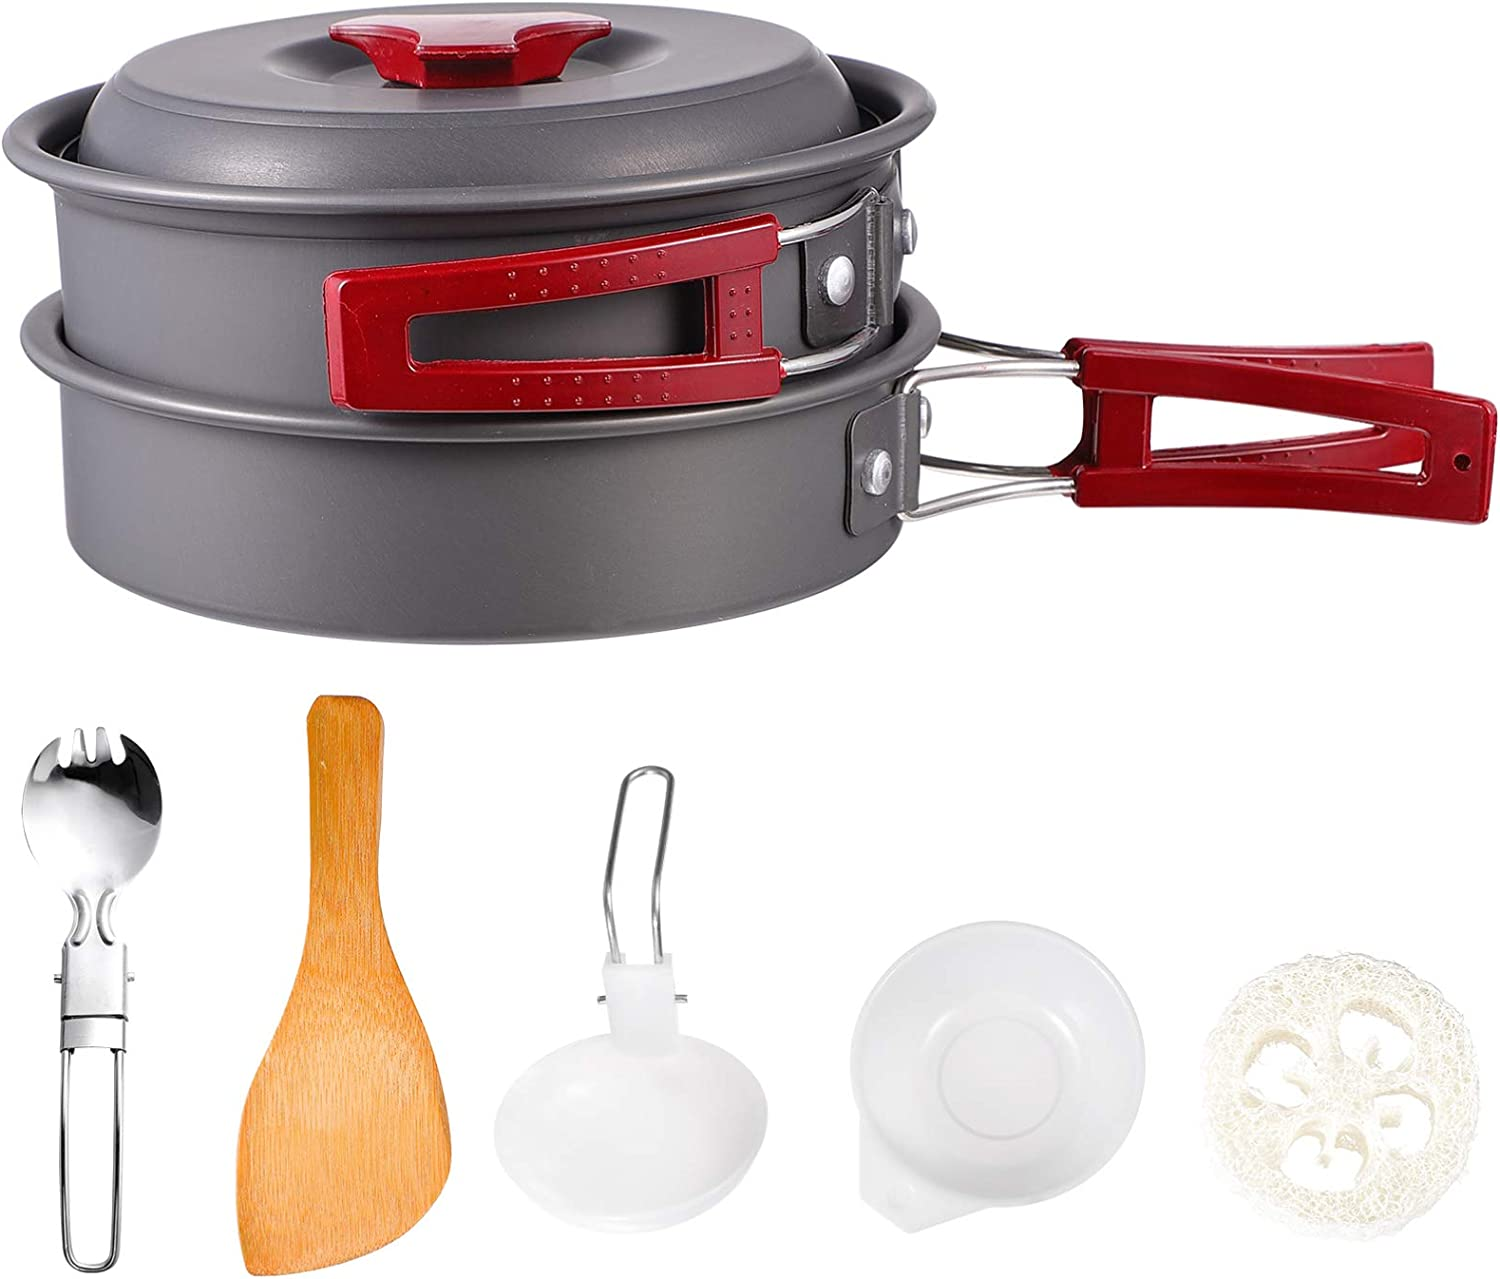 BESPORTBLE 1 Set Outdoor Camping Utensils Combin Tucson Mall Cookware Hiking free